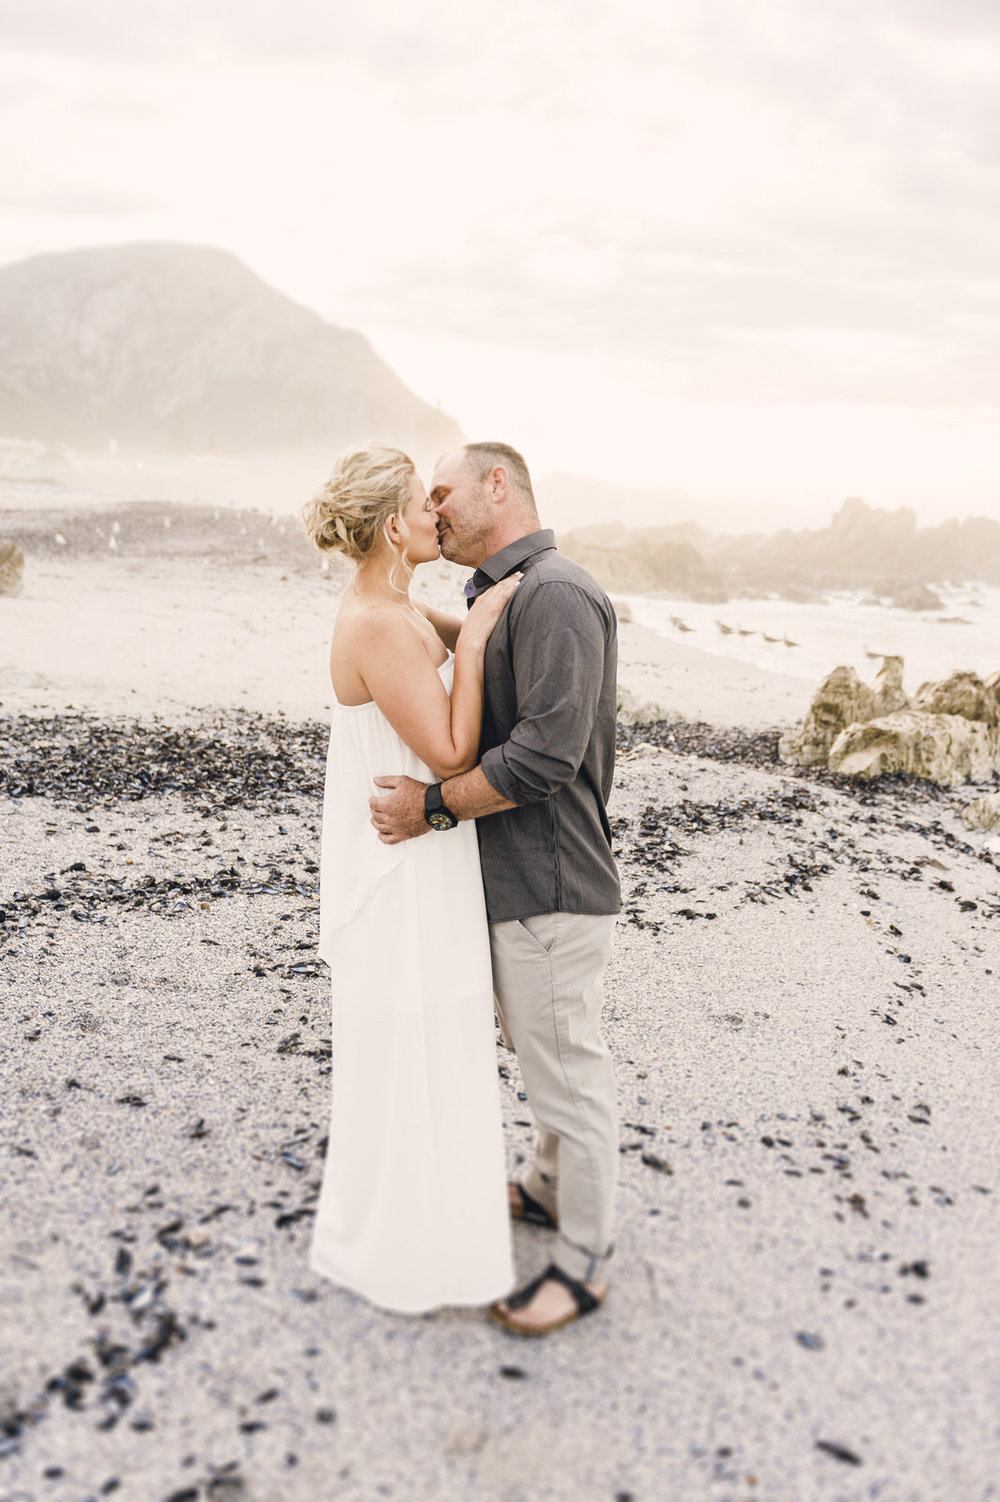 RyanParker_CapeTown_Photographer_Wedding_Hermanus_A&B_DSC_9074.jpg